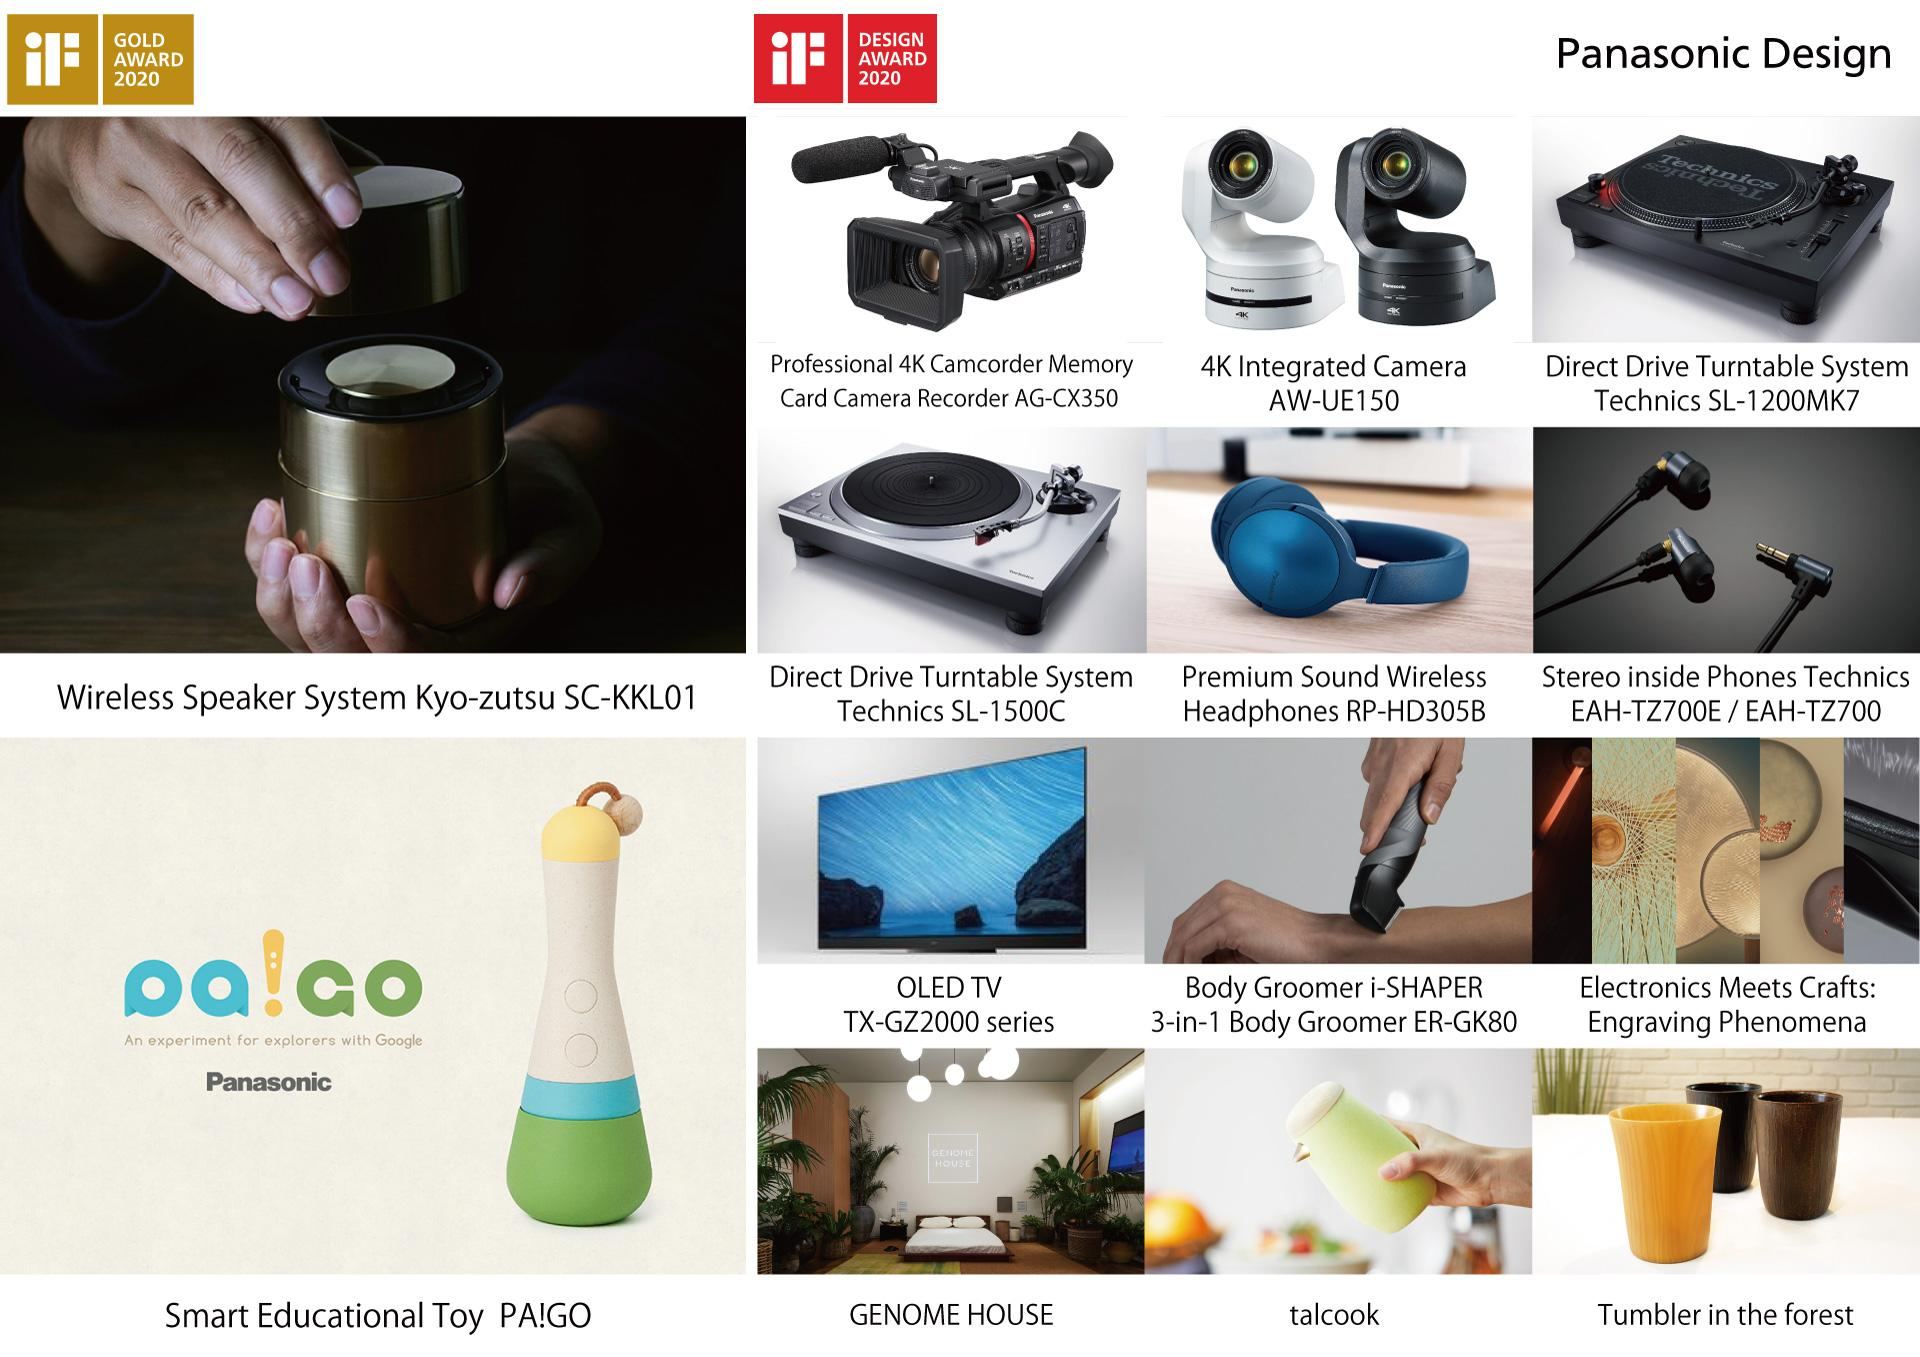 Image: Panasonic products and projects that received the iF DESIGN AWARD 2020